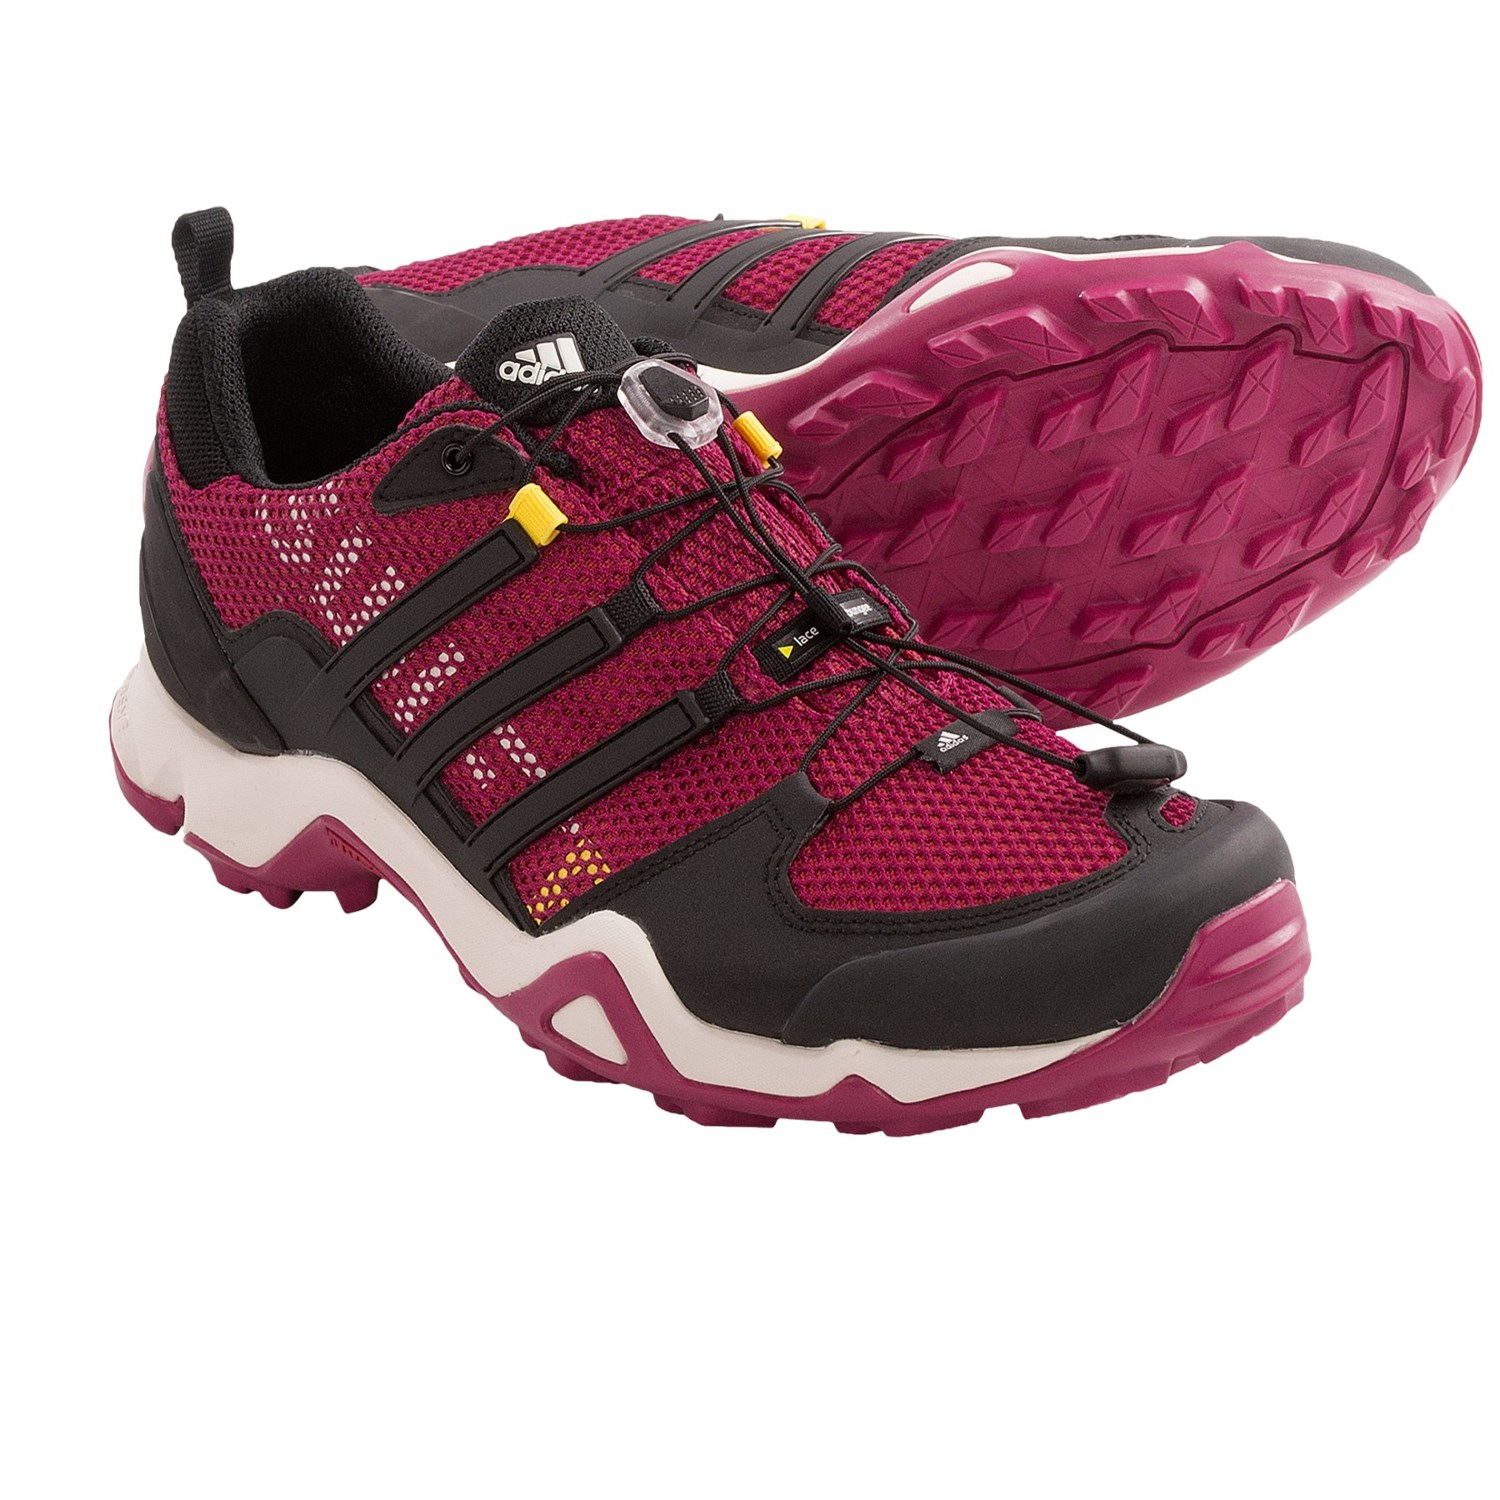 Adidas Outdoor Terrex Swift R Trail Running Shoes (For Women) in Vivid